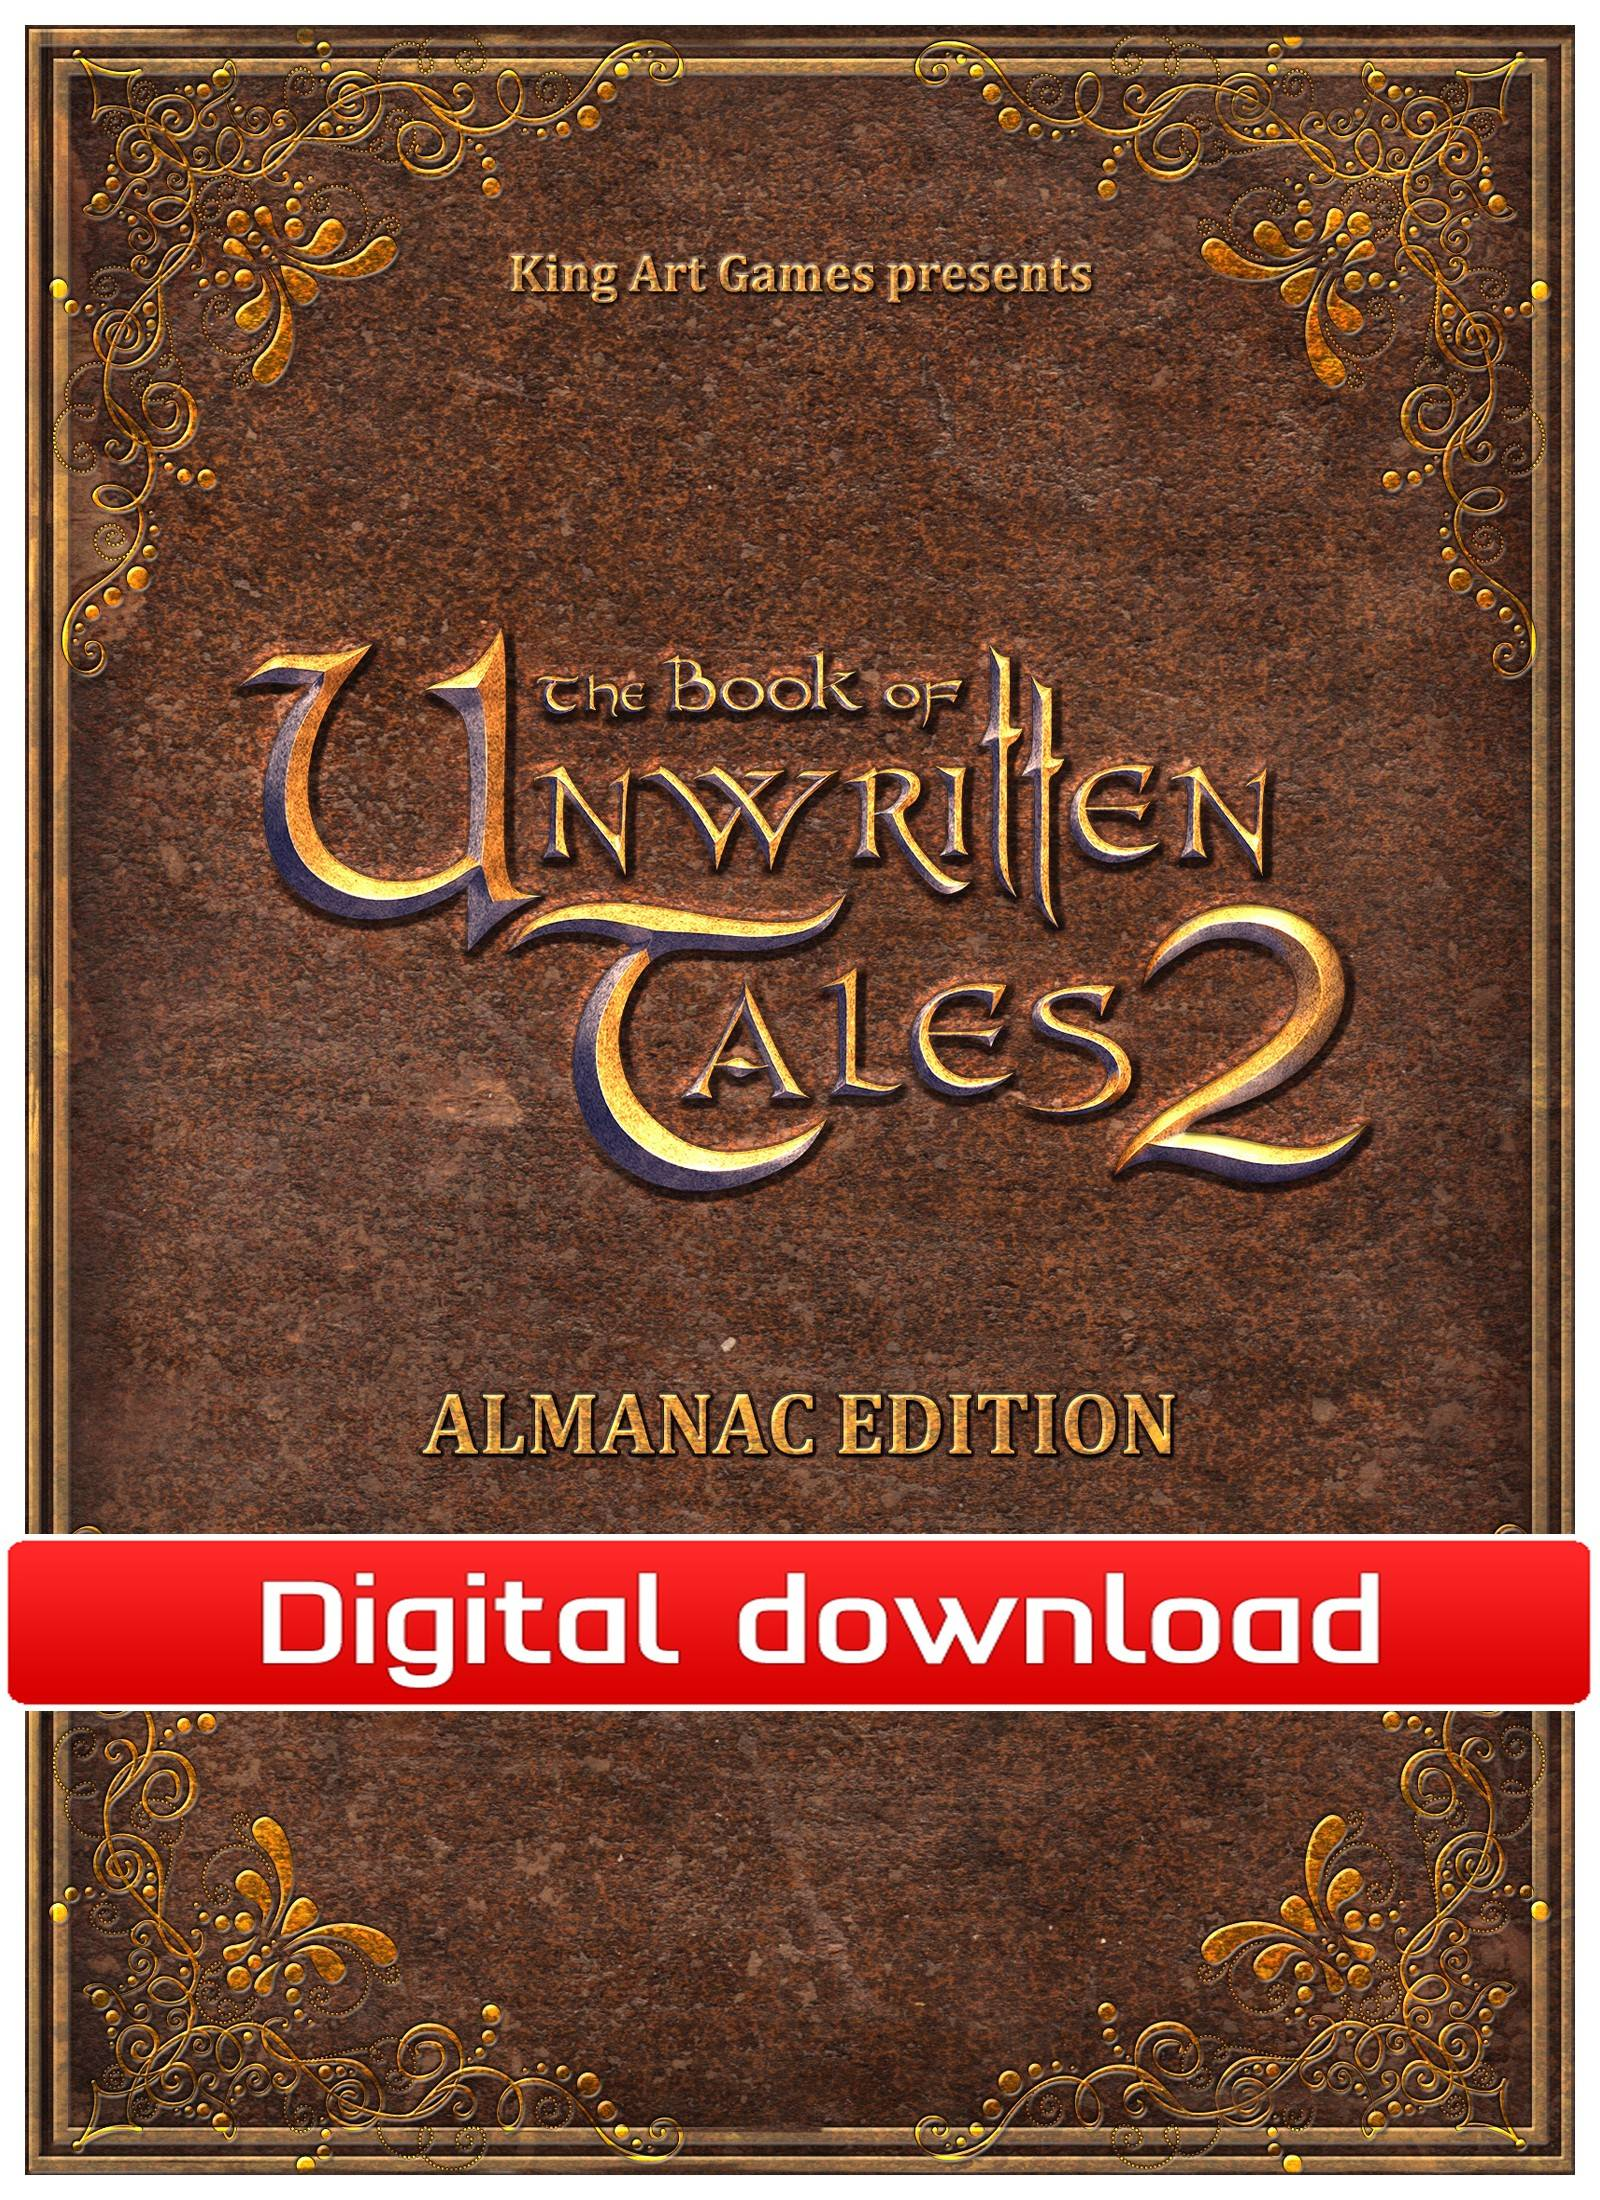 Nordic Games GmbH The Book of Unwritten Tales 2 Almanac Edition (PCDD)